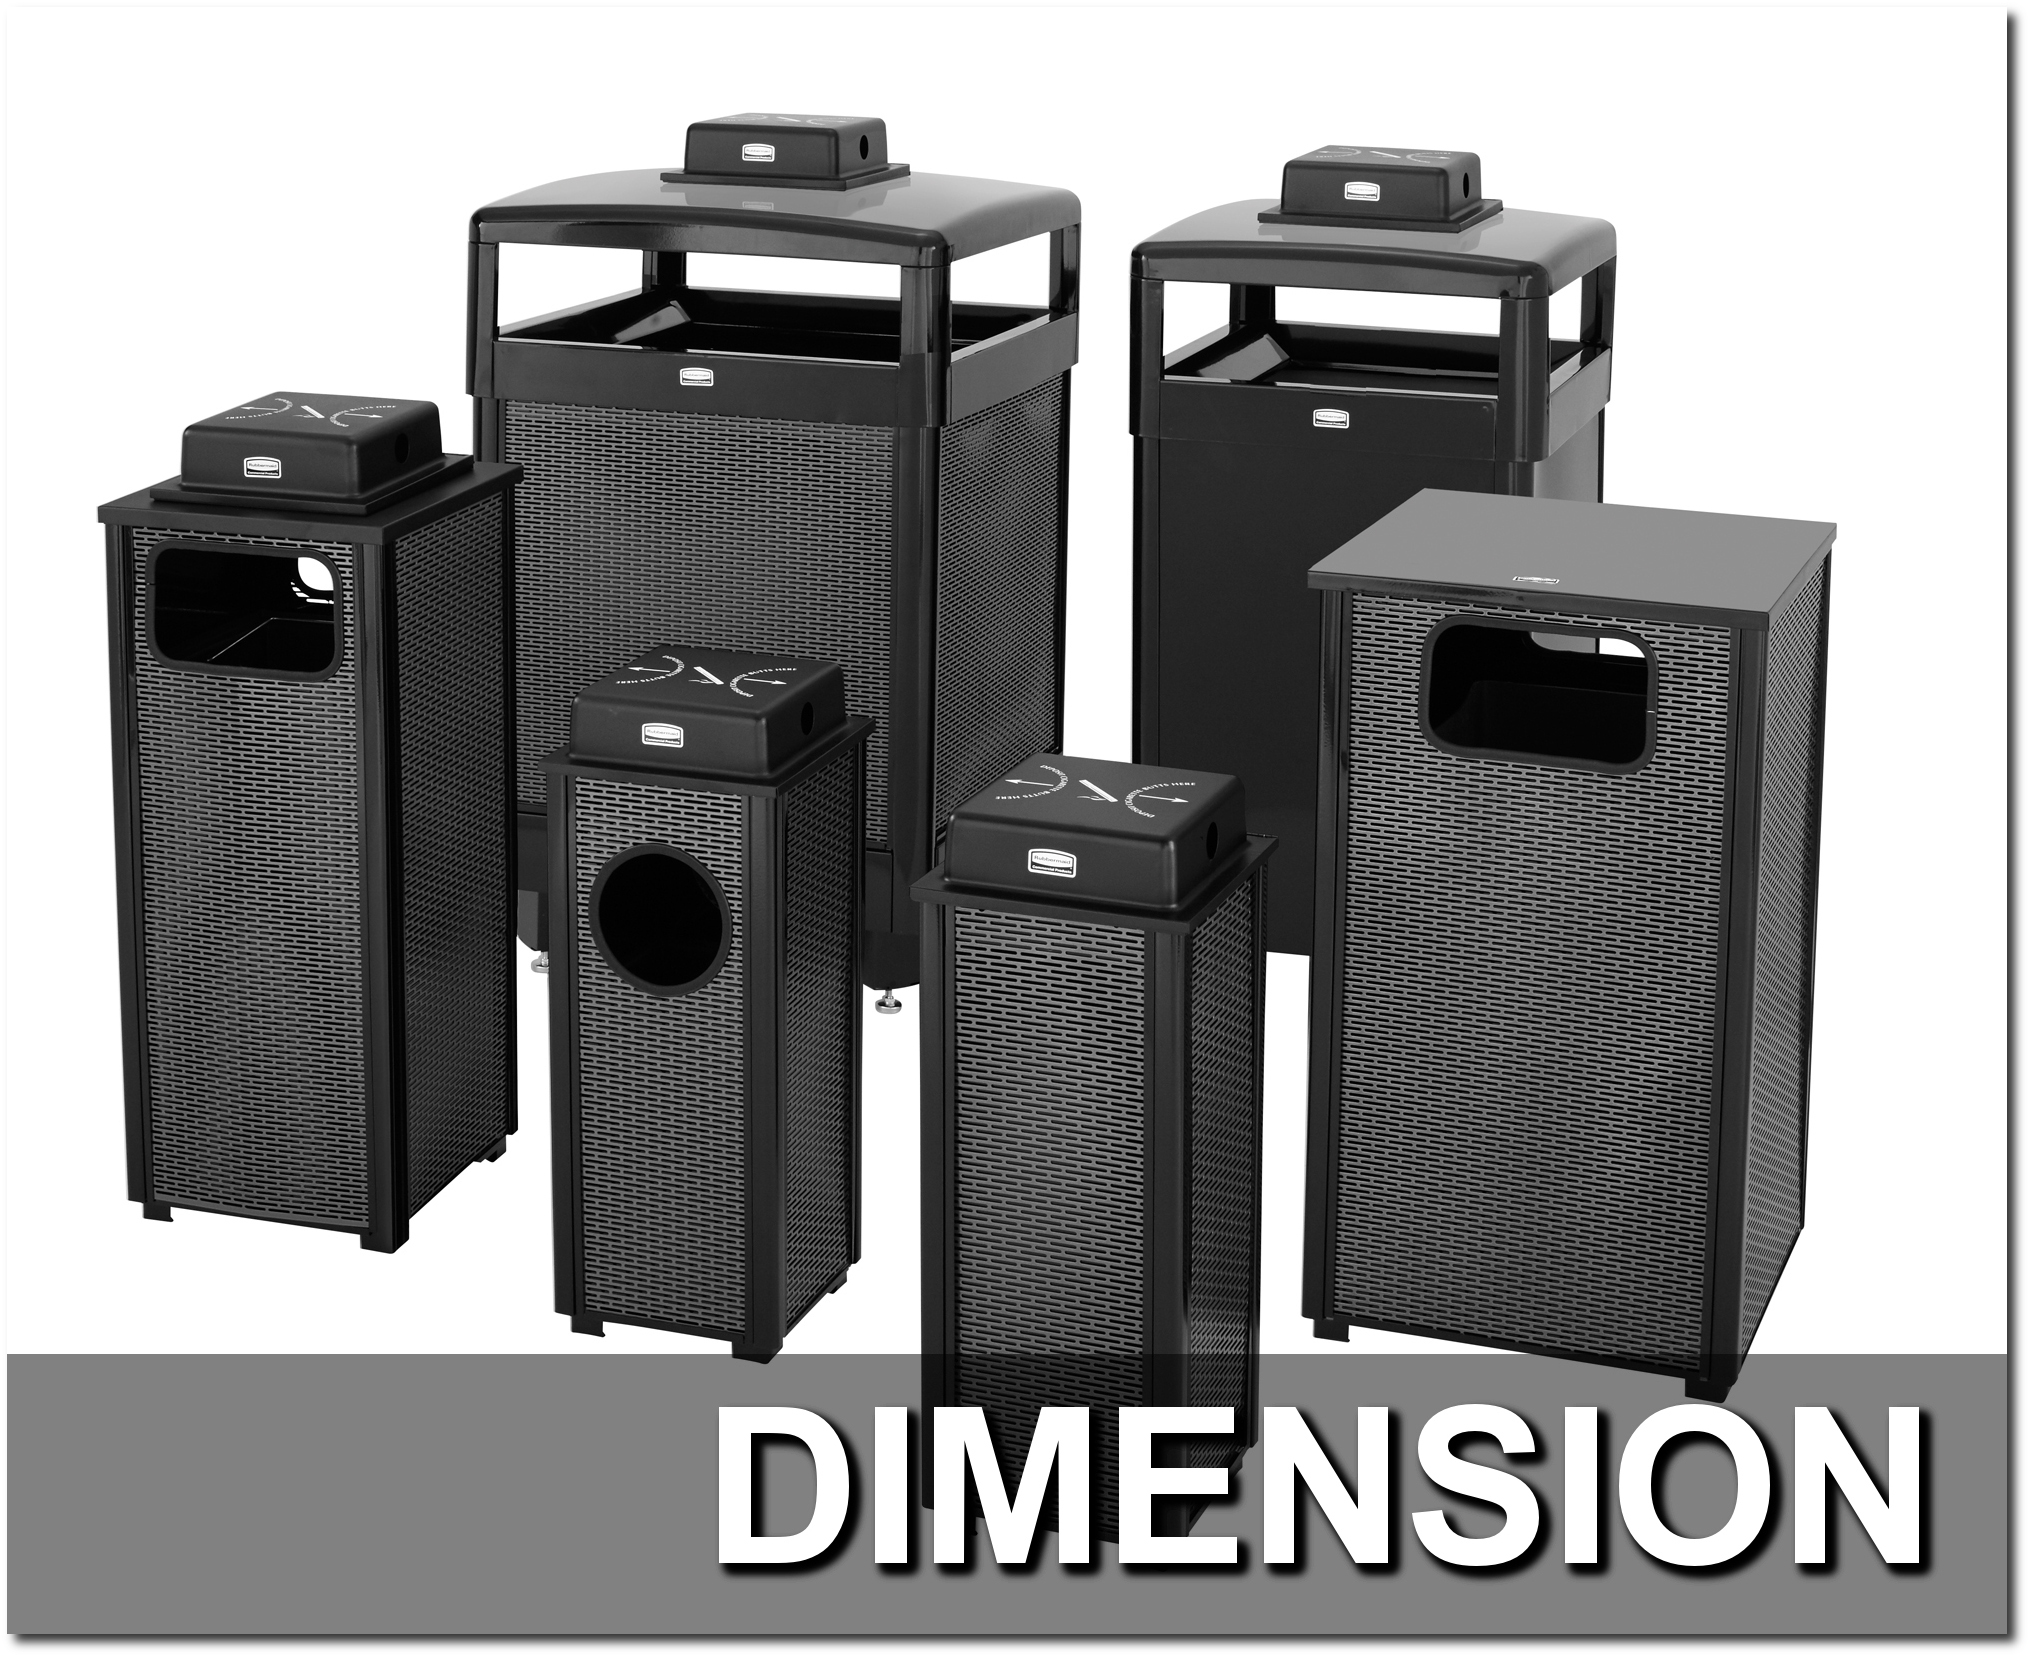 Dimension Series Trash Receptacles